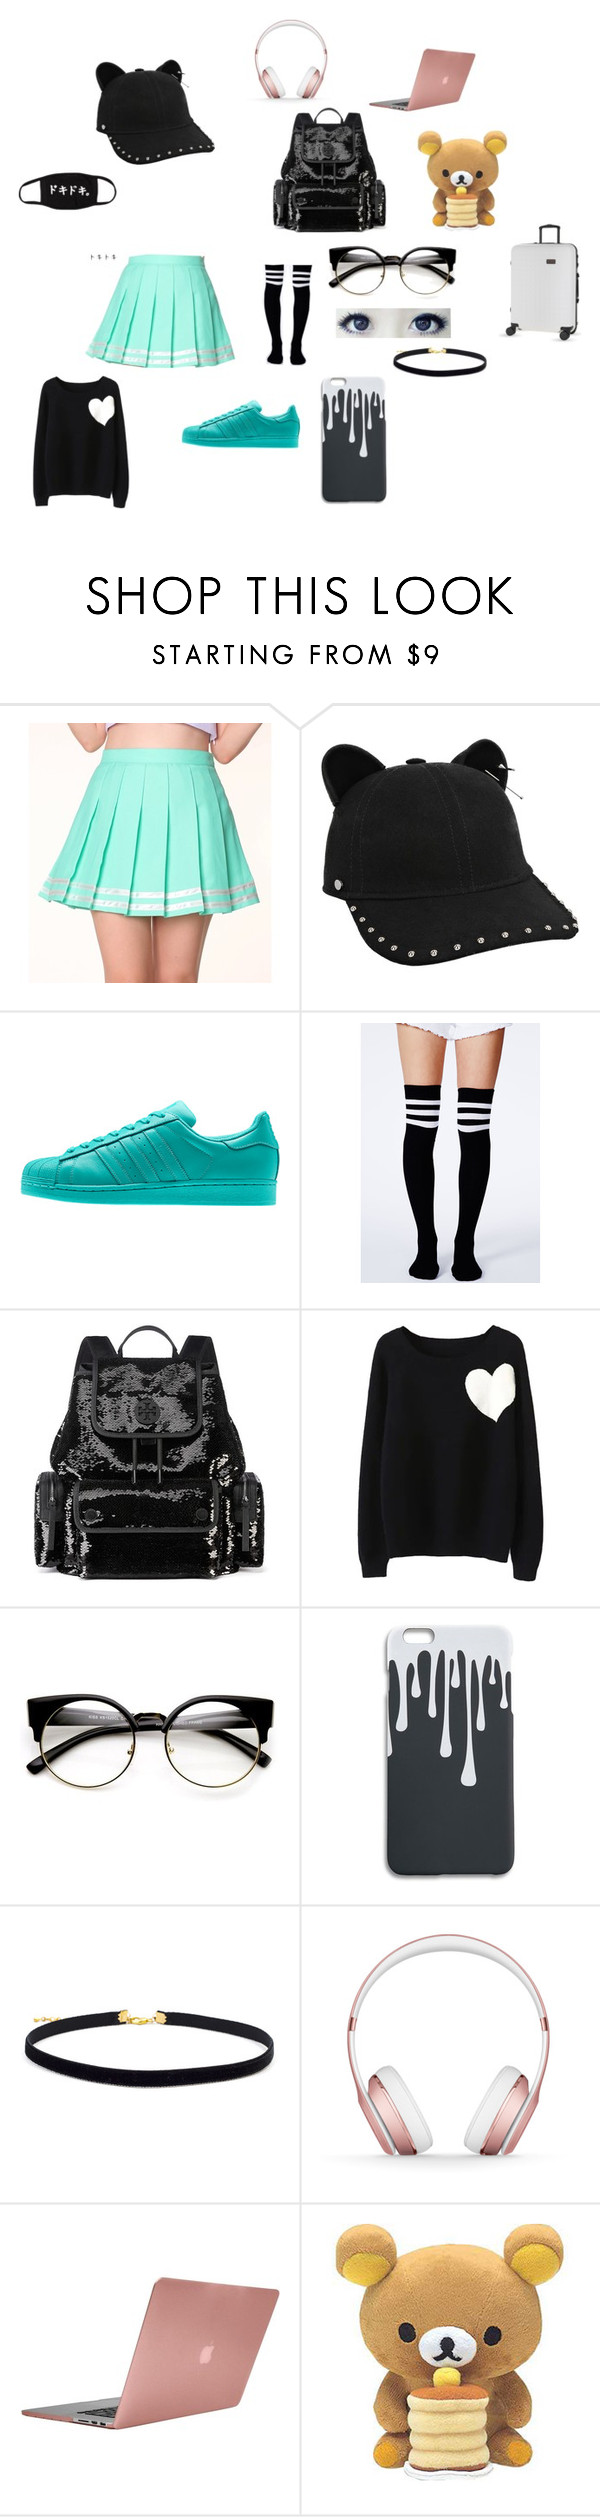 """Omw back to Korea from la"" by hannalove1234 ❤ liked on Polyvore featuring Karl Lagerfeld, Missguided, Tory Burch, WithChic, GUSTA, Beats by Dr. Dre, Incase and Dot-Drops"